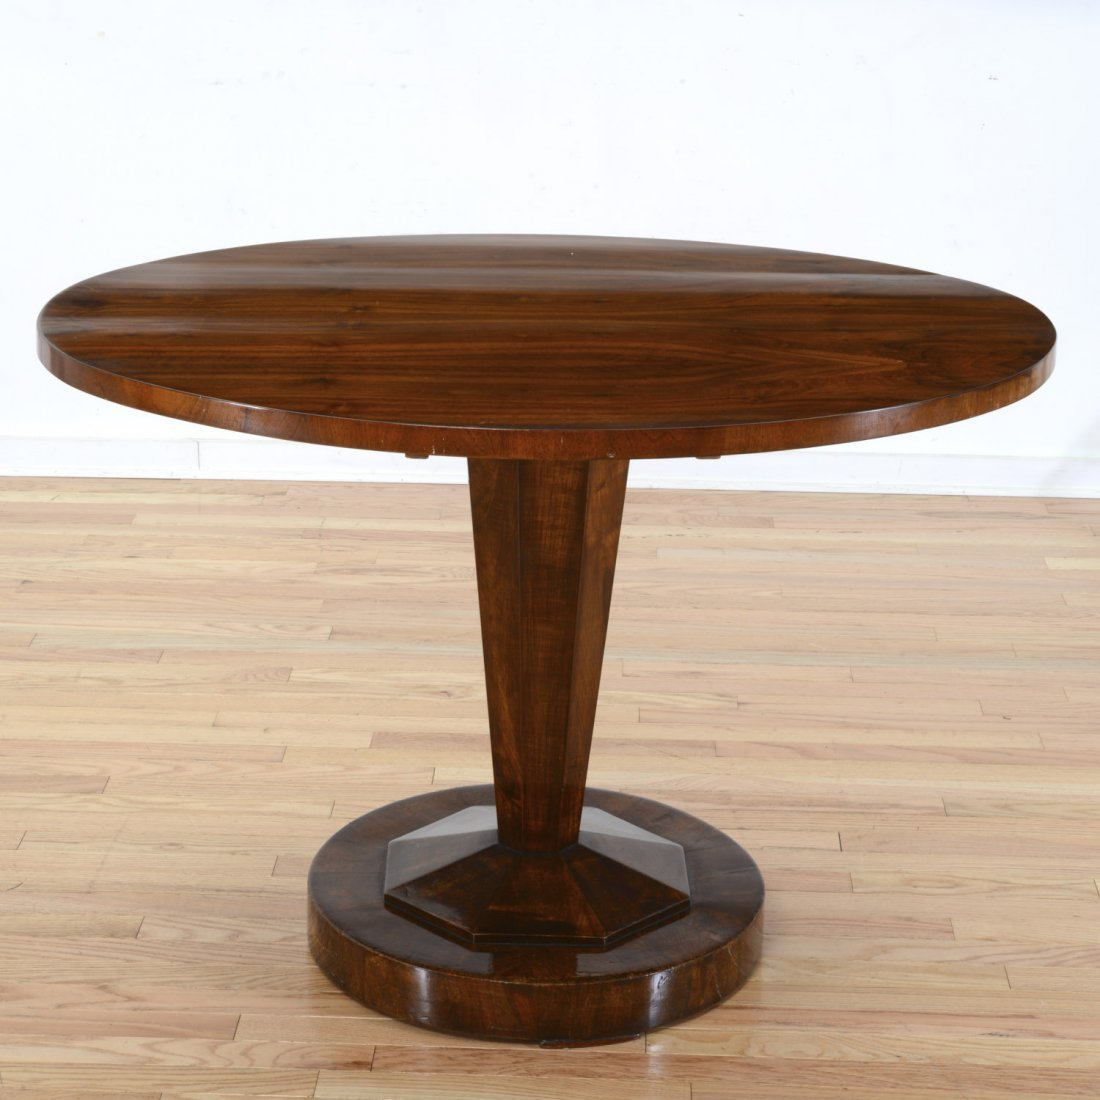 Manner Jules Leleu Deco rosewood center table